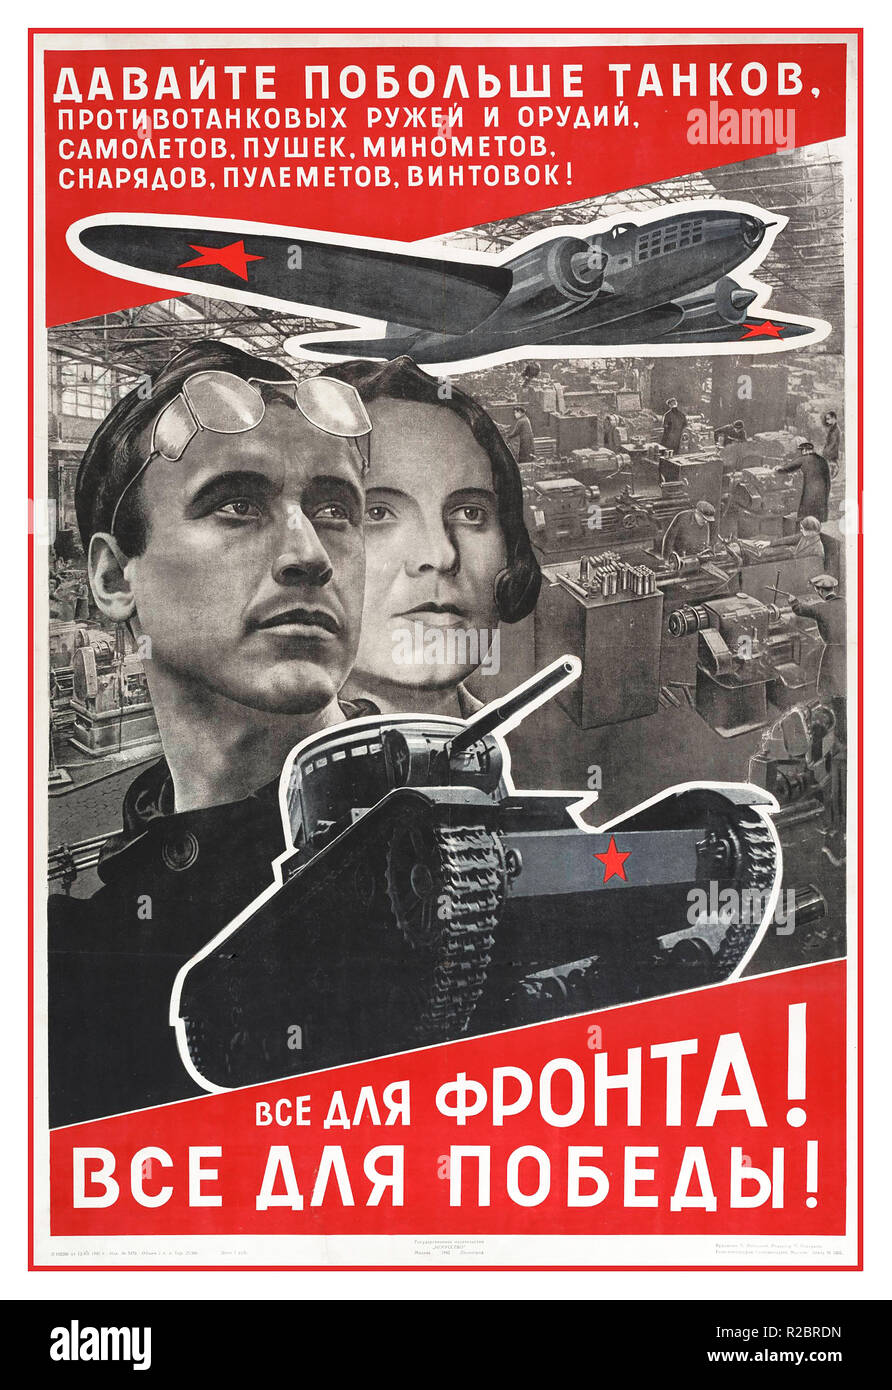 Vintage 1940's Russia Soviet Union USSR propaganda war poster.. 'Everything for the Front -Everything for Victory' 'Give us more tanks' Soviet WWII WW2  propaganda poster. War workers industry appeal for more fighting hardware poster by influential Soviet artist El Lissitzky.1942 Moscow Soviet Union USSR Russia - Stock Image